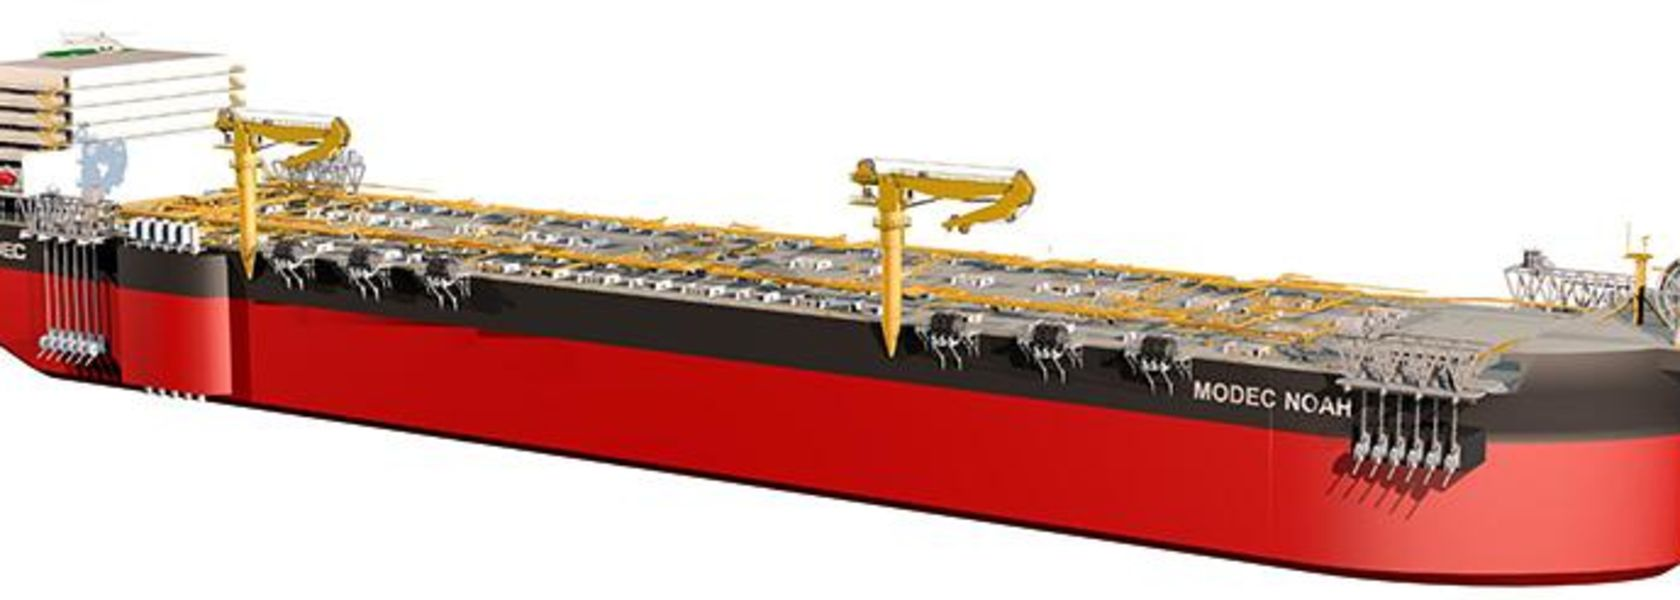 Modec launches two new FPSO designs - Energy News Bulletin